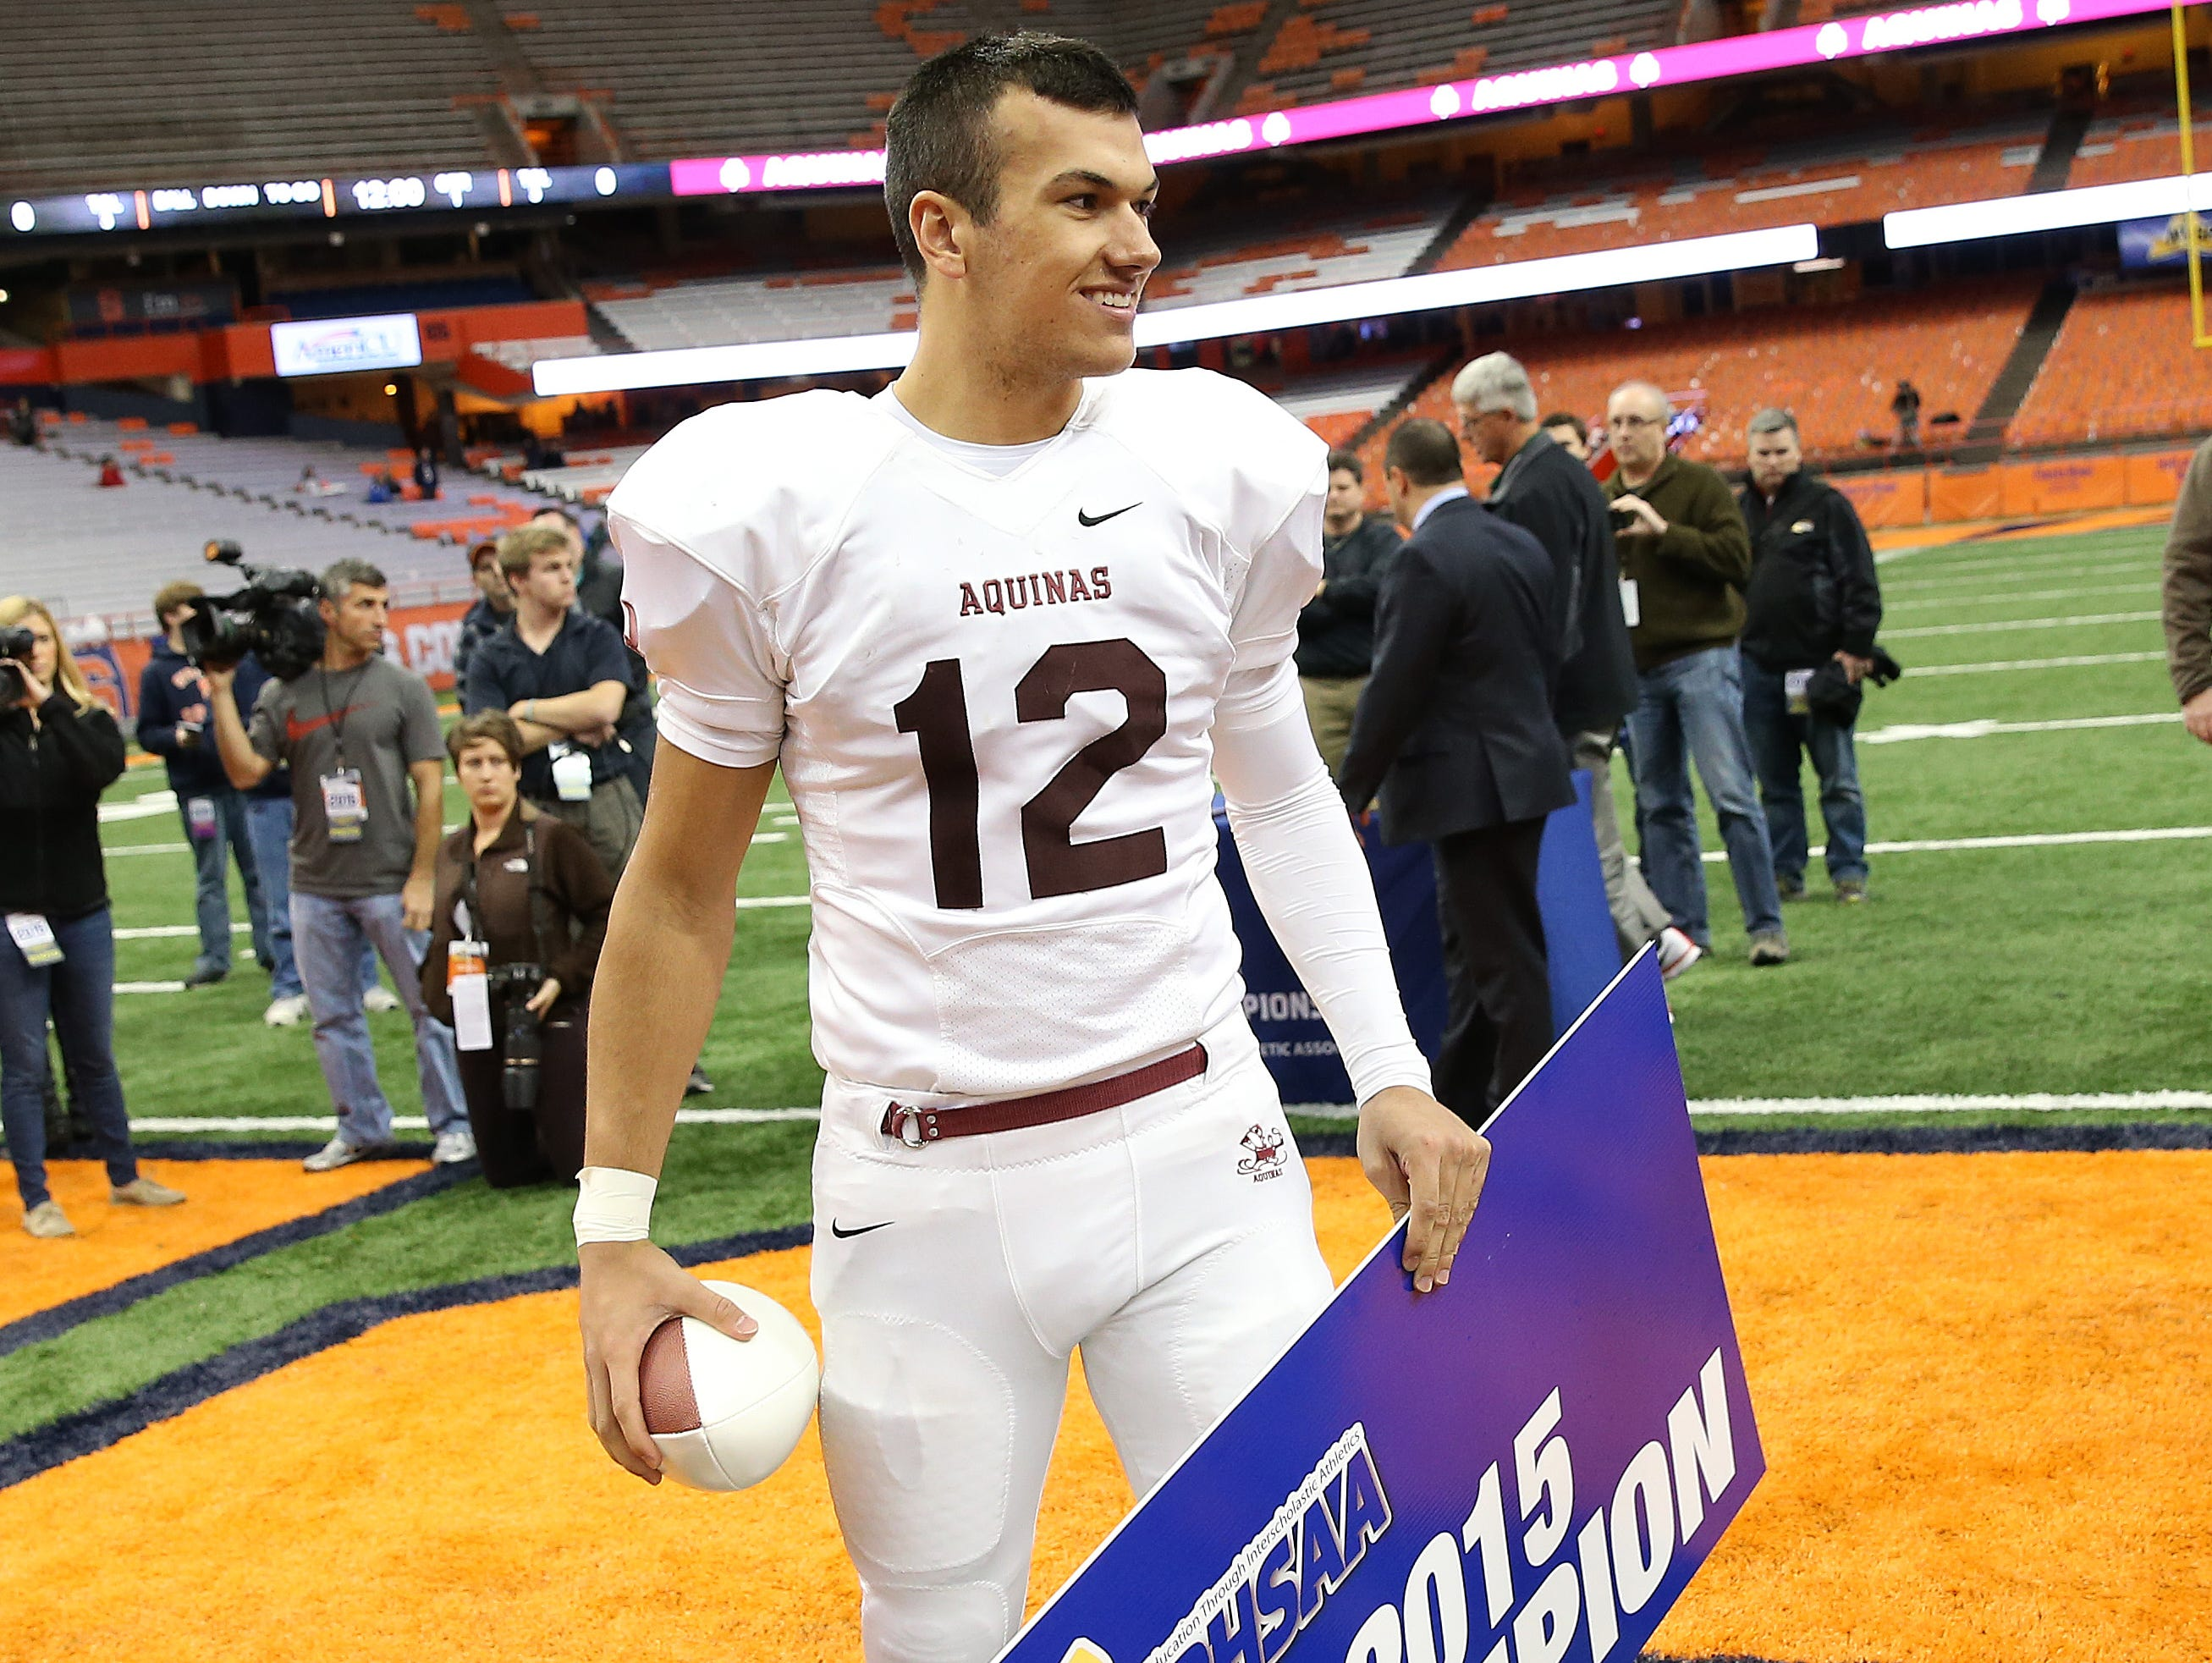 Aquinas QB Jake Zembiec holds a state championship sign and a commemorative ball after the Lil Irish won the Class AA title.